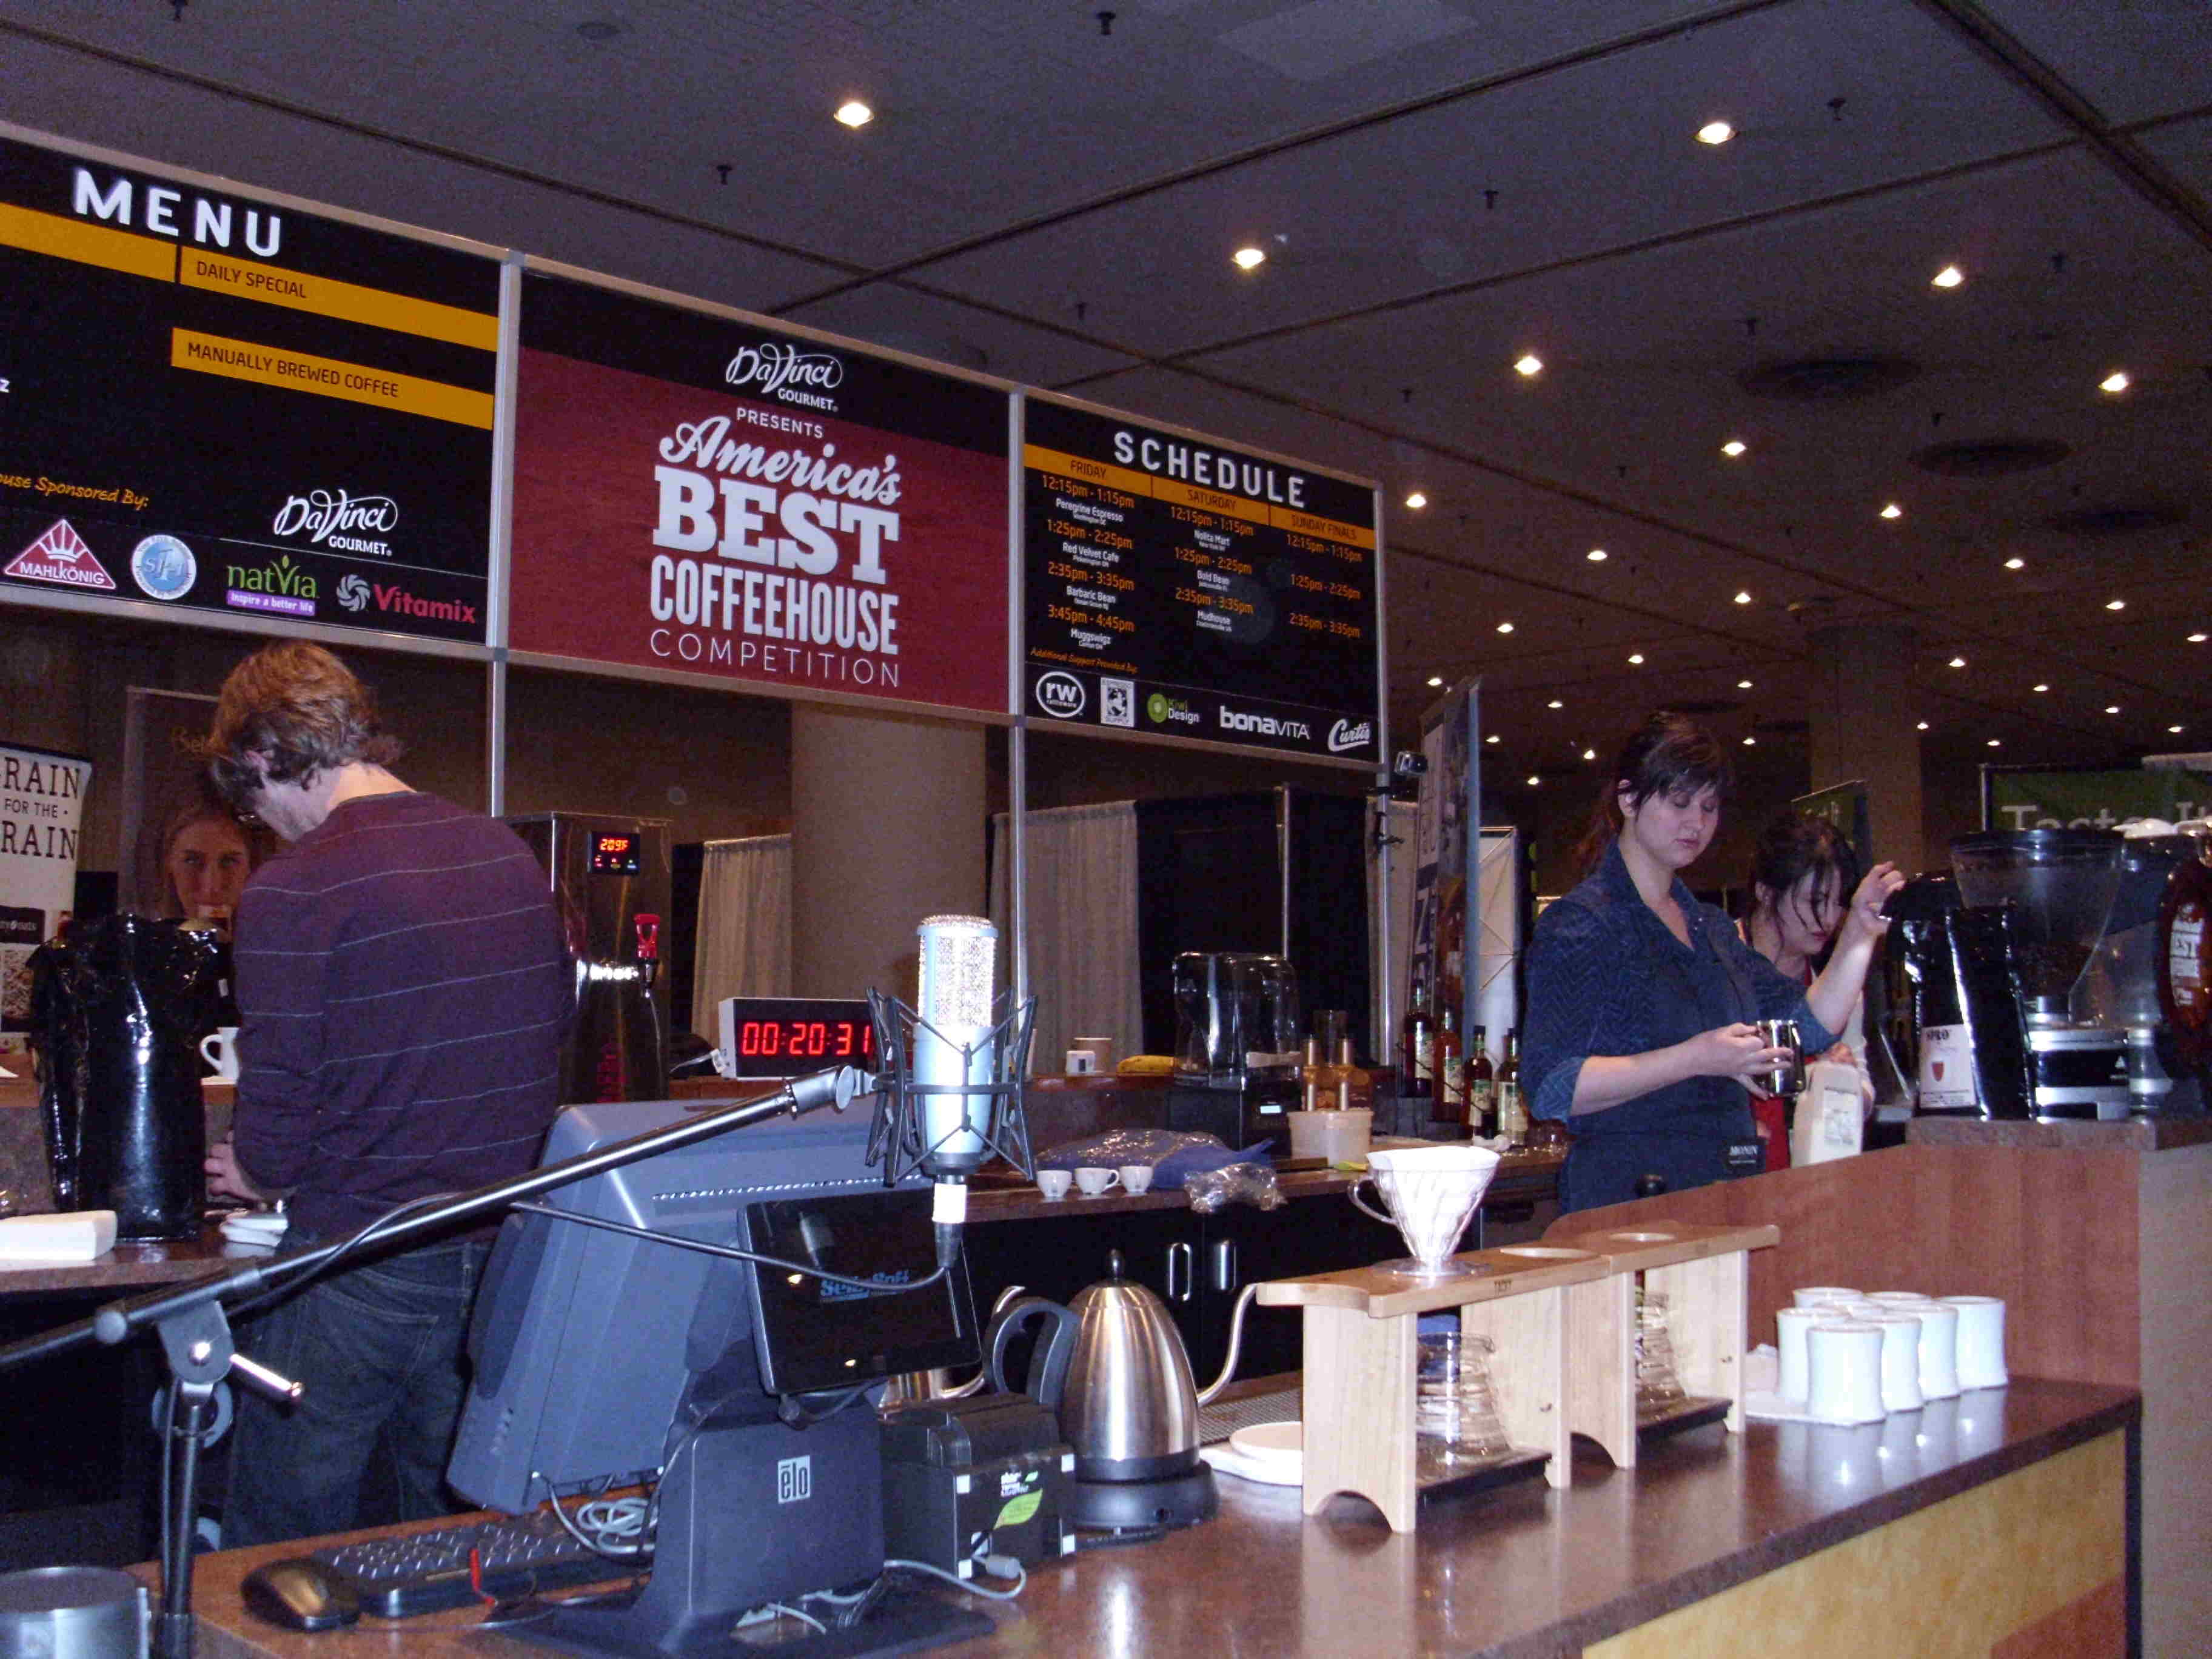 Muggswigz Competing at America's Best Coffeehouse Competition